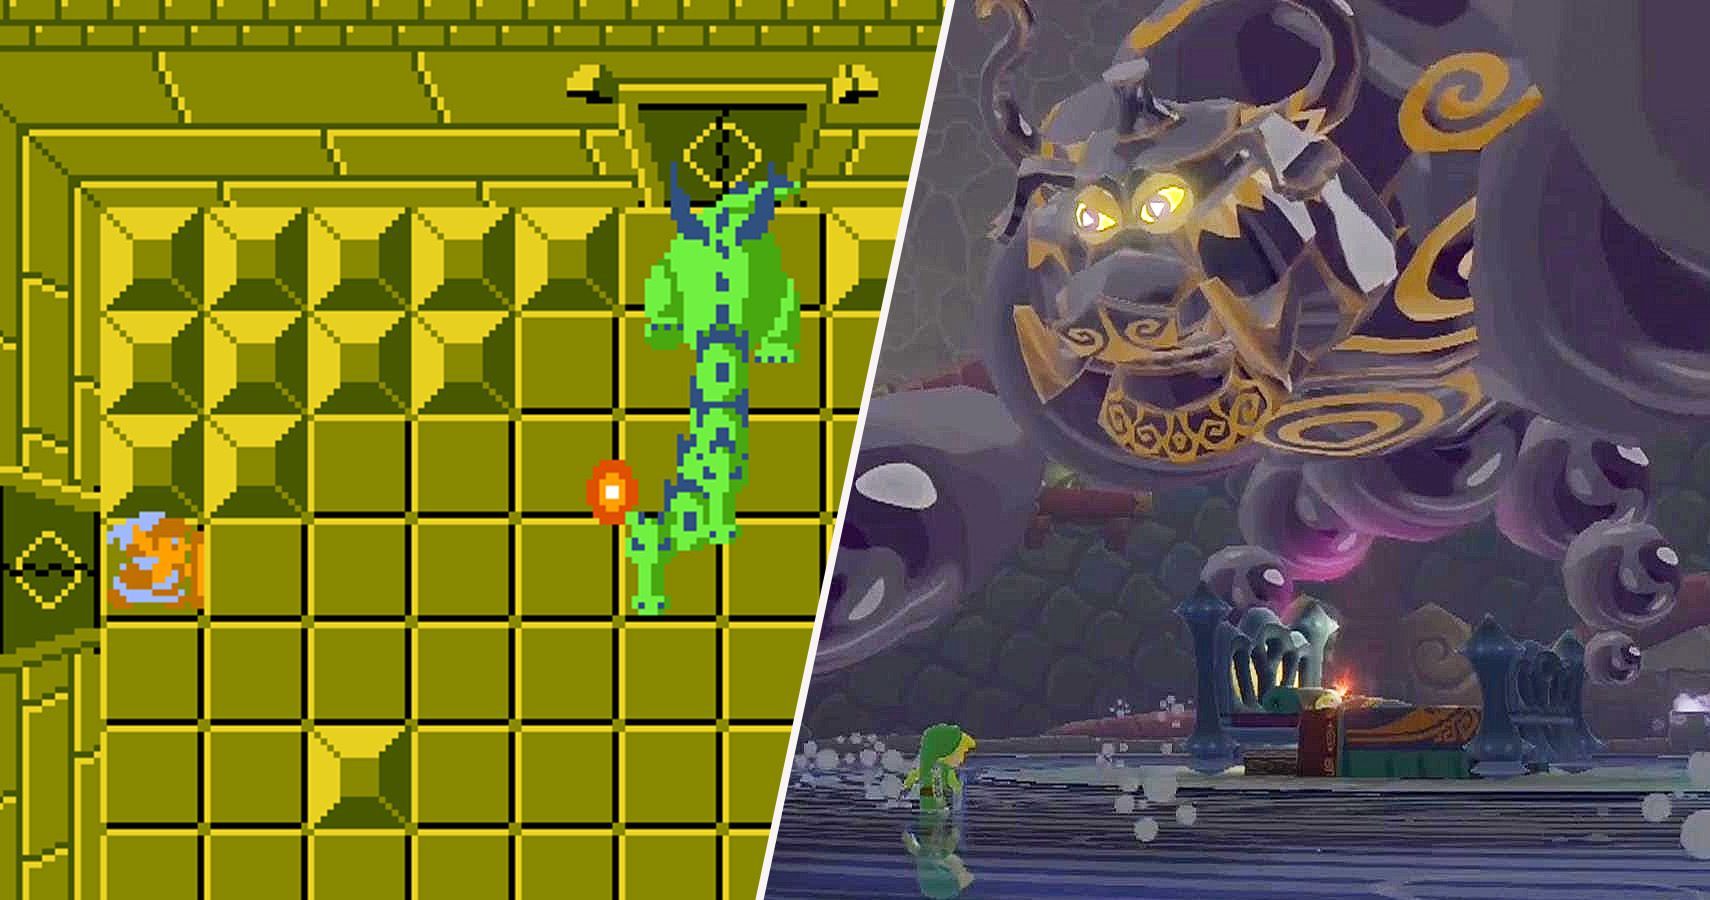 Breath Of The Wild Bosses >> 20 Legend Of Zelda Bosses That Are Impossible To Beat (And How To Beat Them)